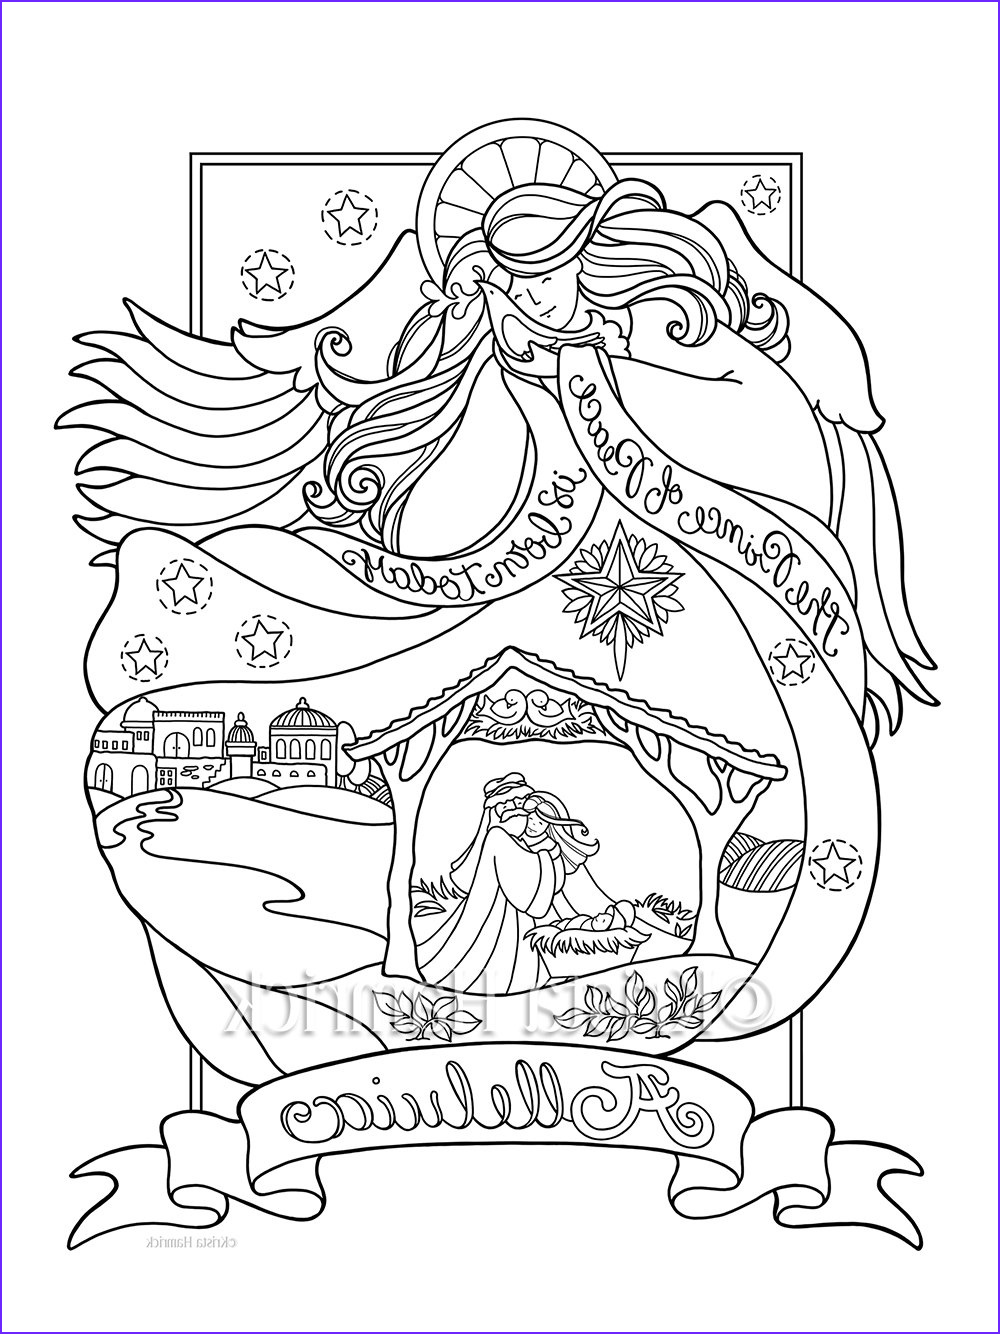 Christmas Nativity Coloring Pages Elegant Photography Angel Nativity Coloring Page In Three Sizes 8 5x11 8x10